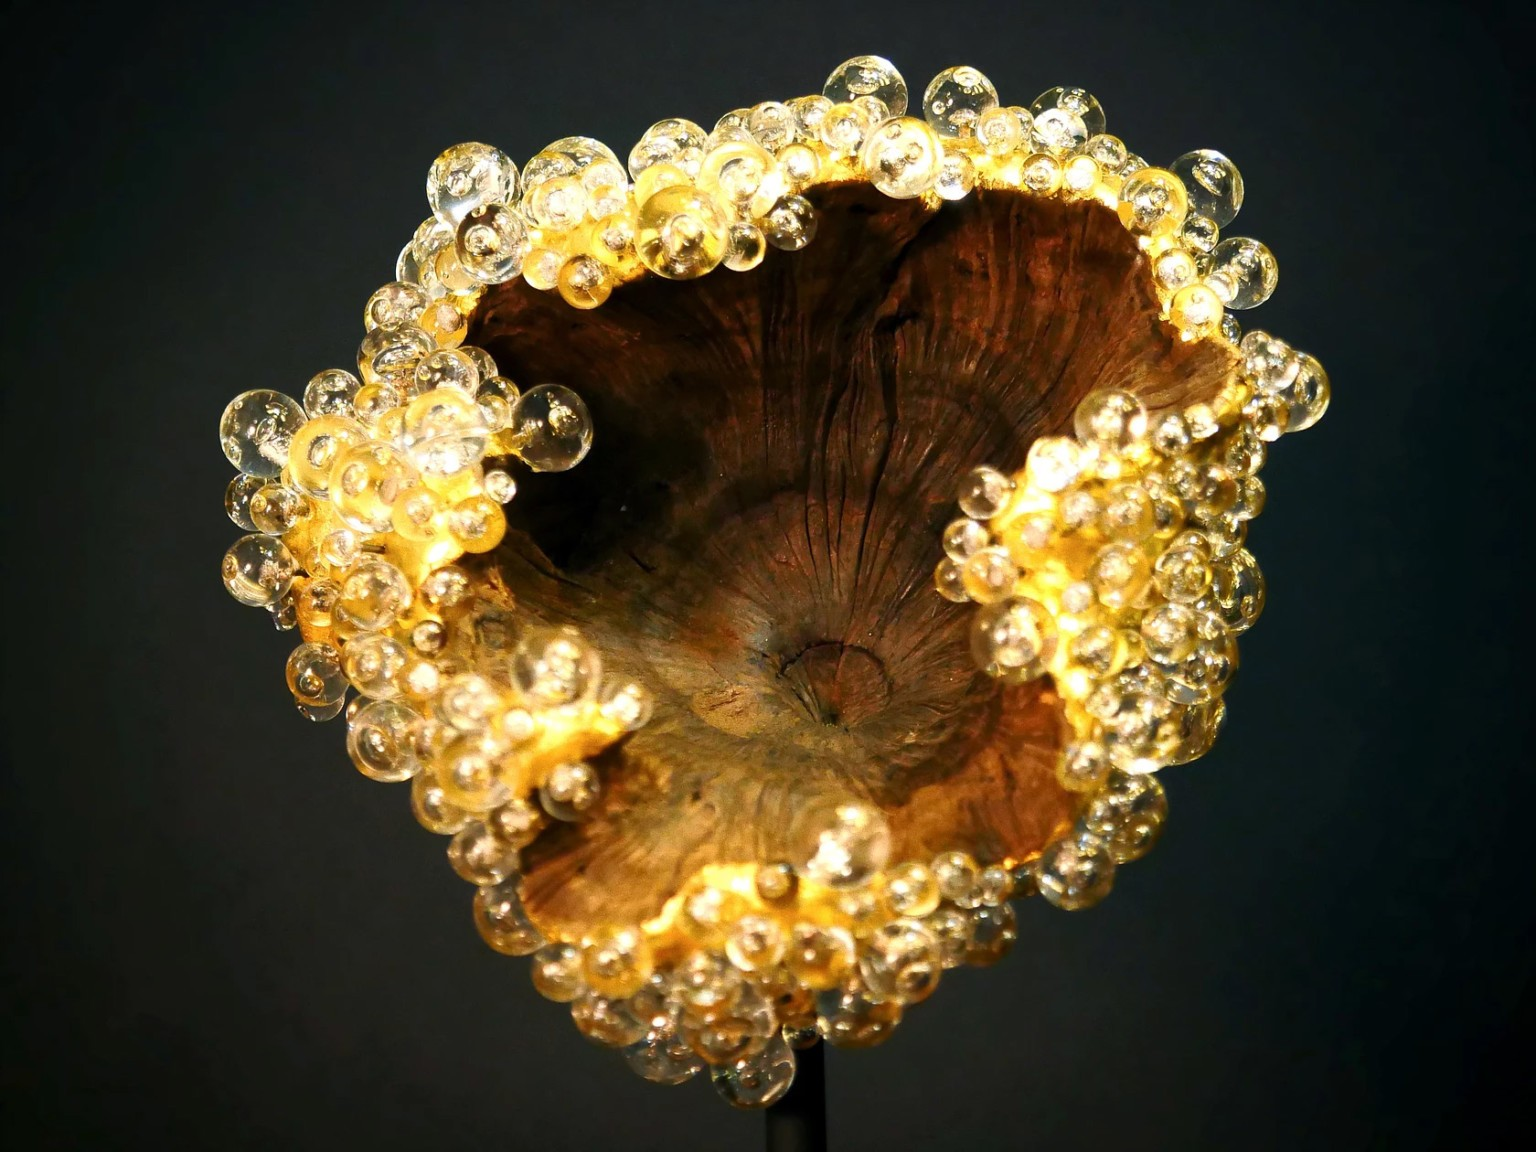 Glass Beaded Sculptures by Valérie Rey Bring a Luminous New Dimension to Discarded Wood